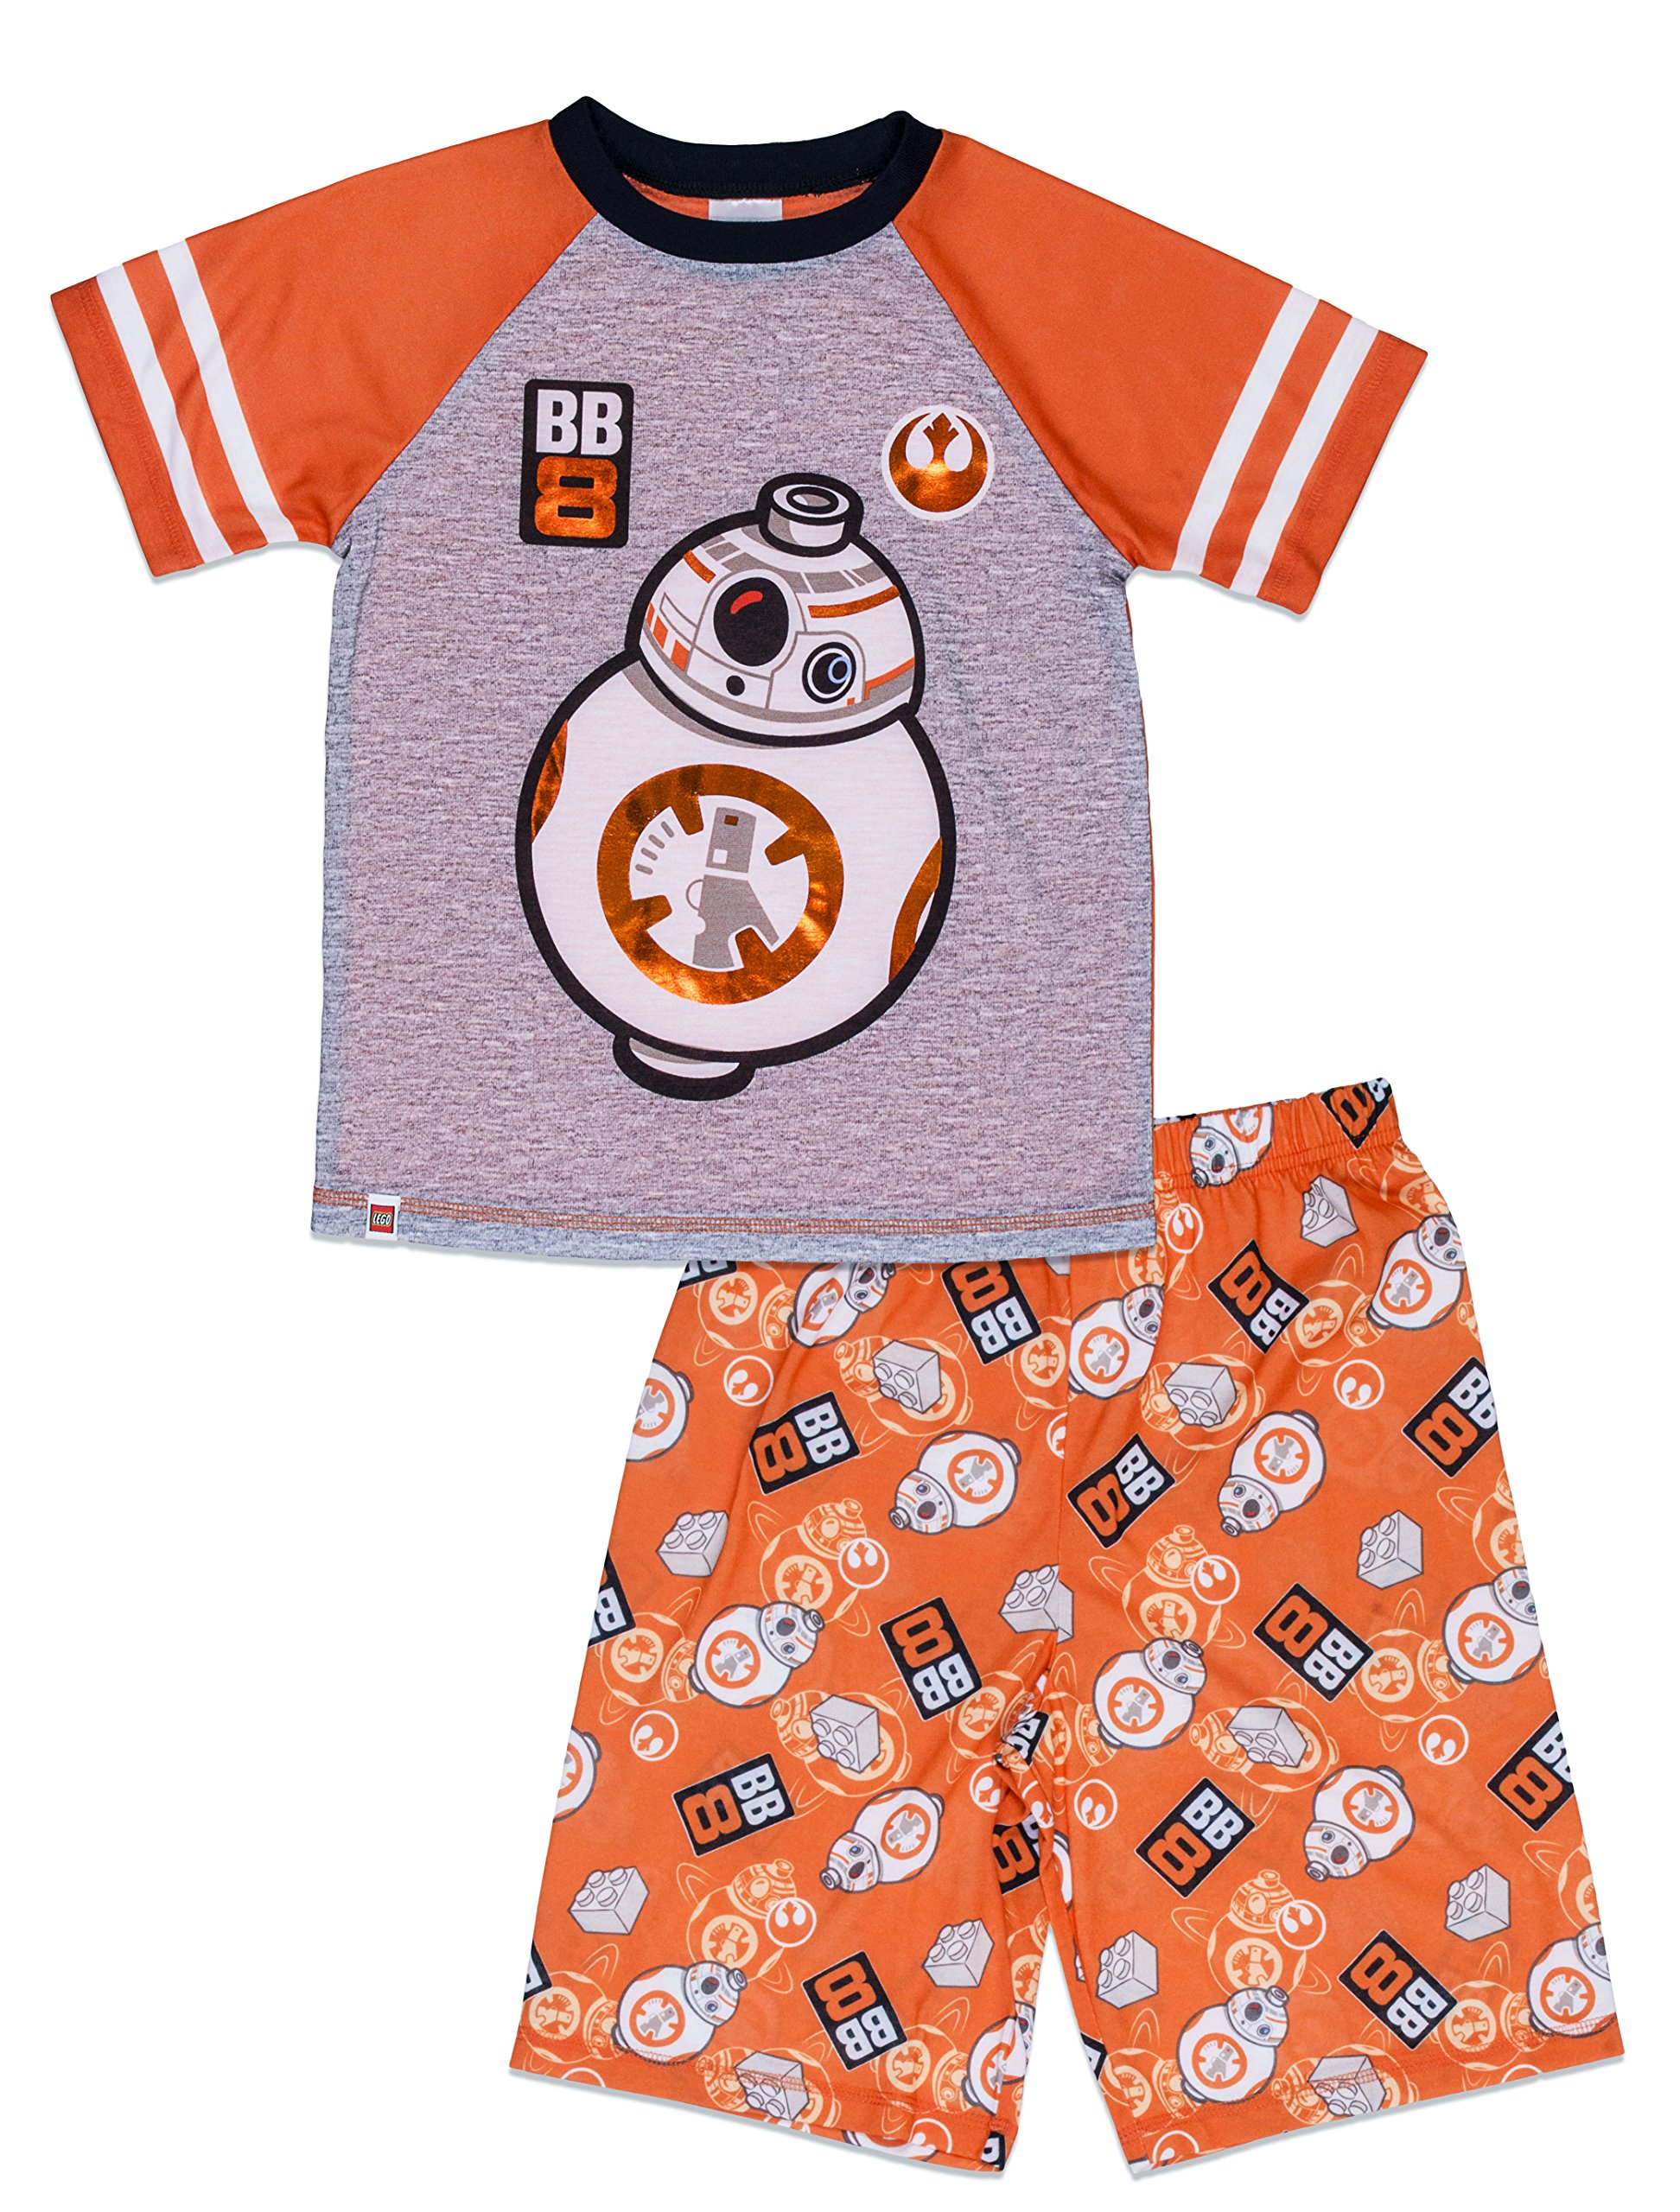 LEGO Star Wars Big Boys' BB-8 2-Piece Pajama Short Set, Orggry, 10/12 by LEGO (Image #1)